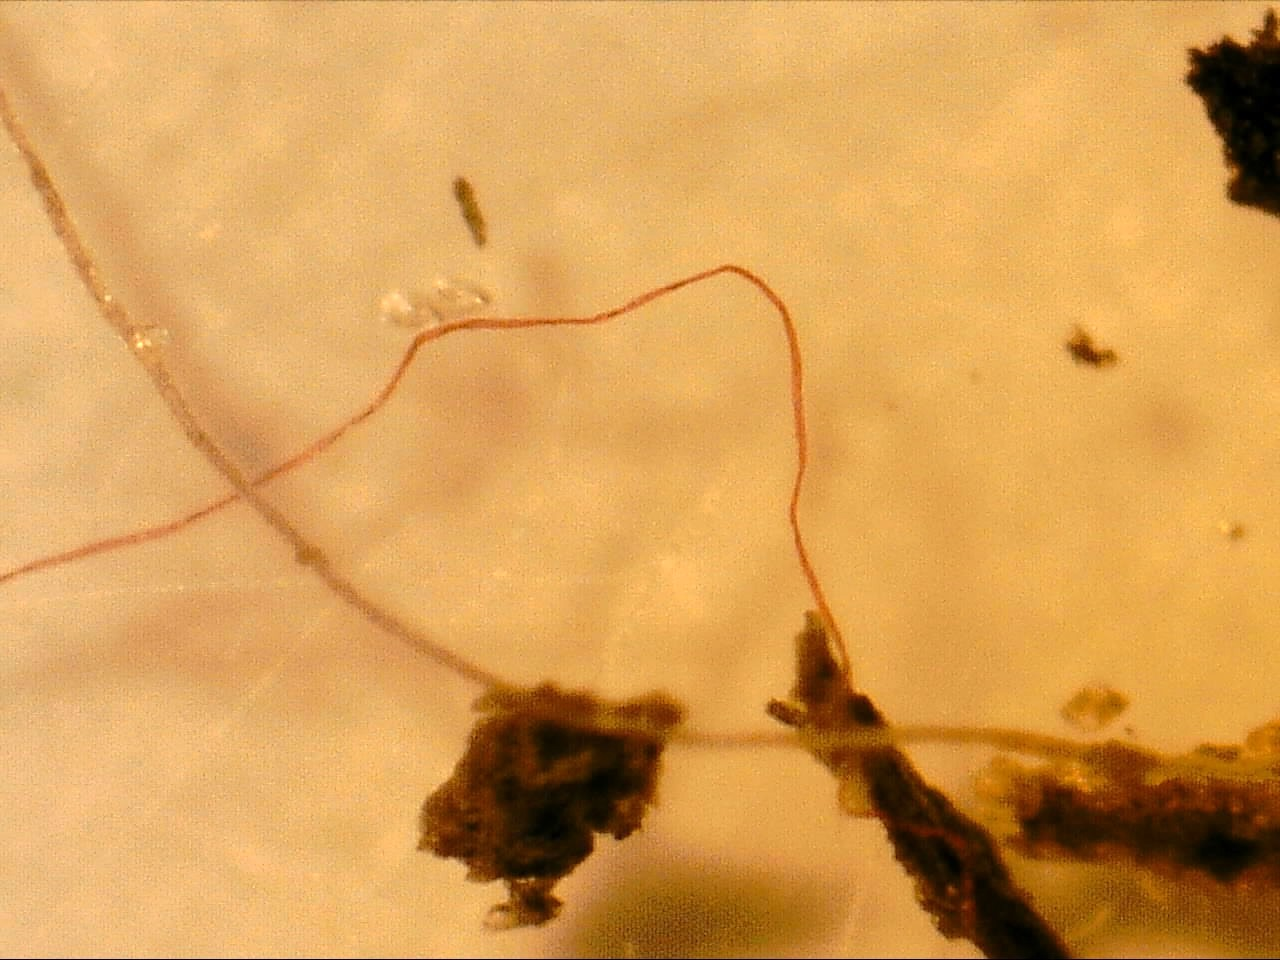 Examples of microplastics found in sediment and water samples